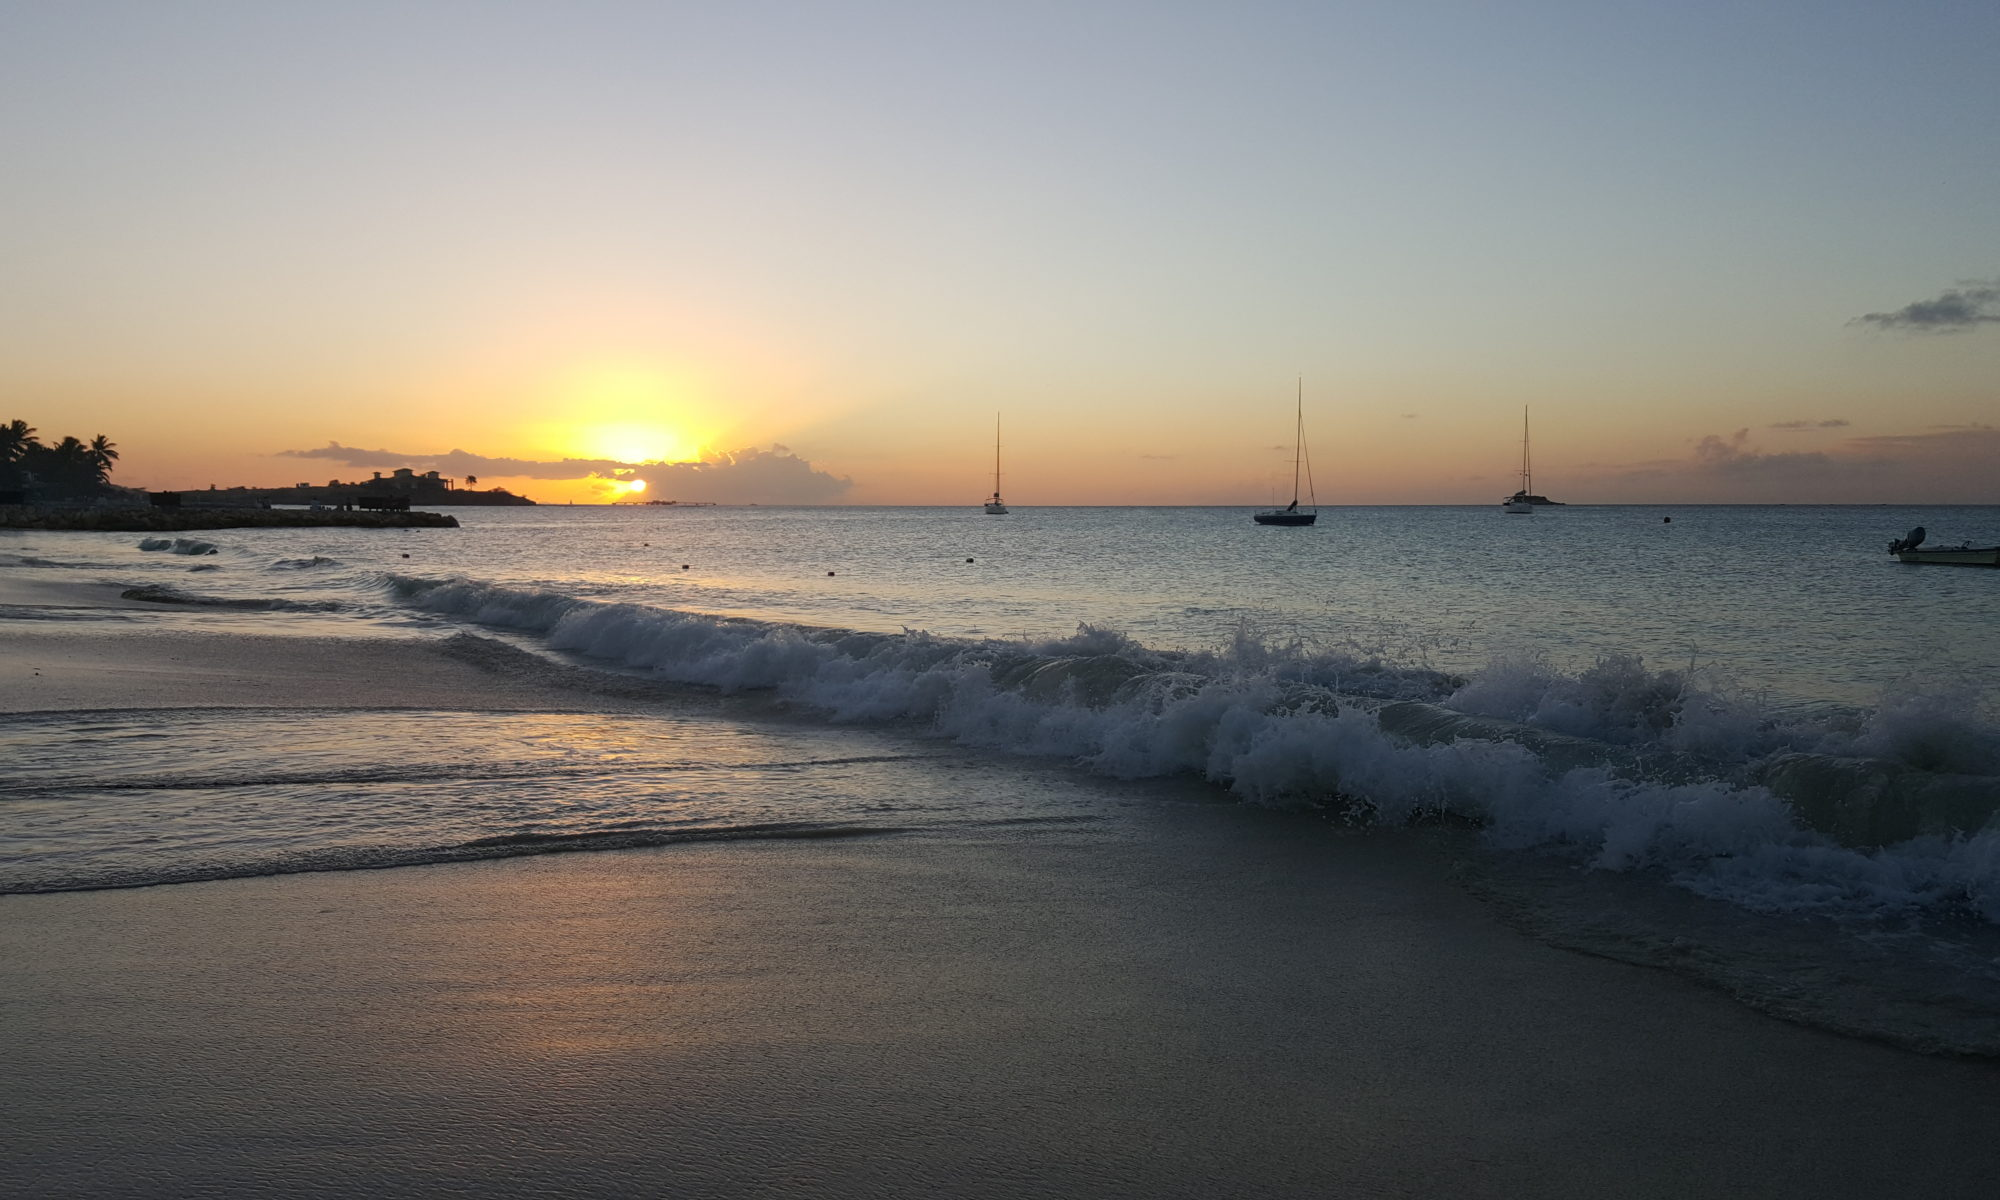 sunset caribbean beach sailing